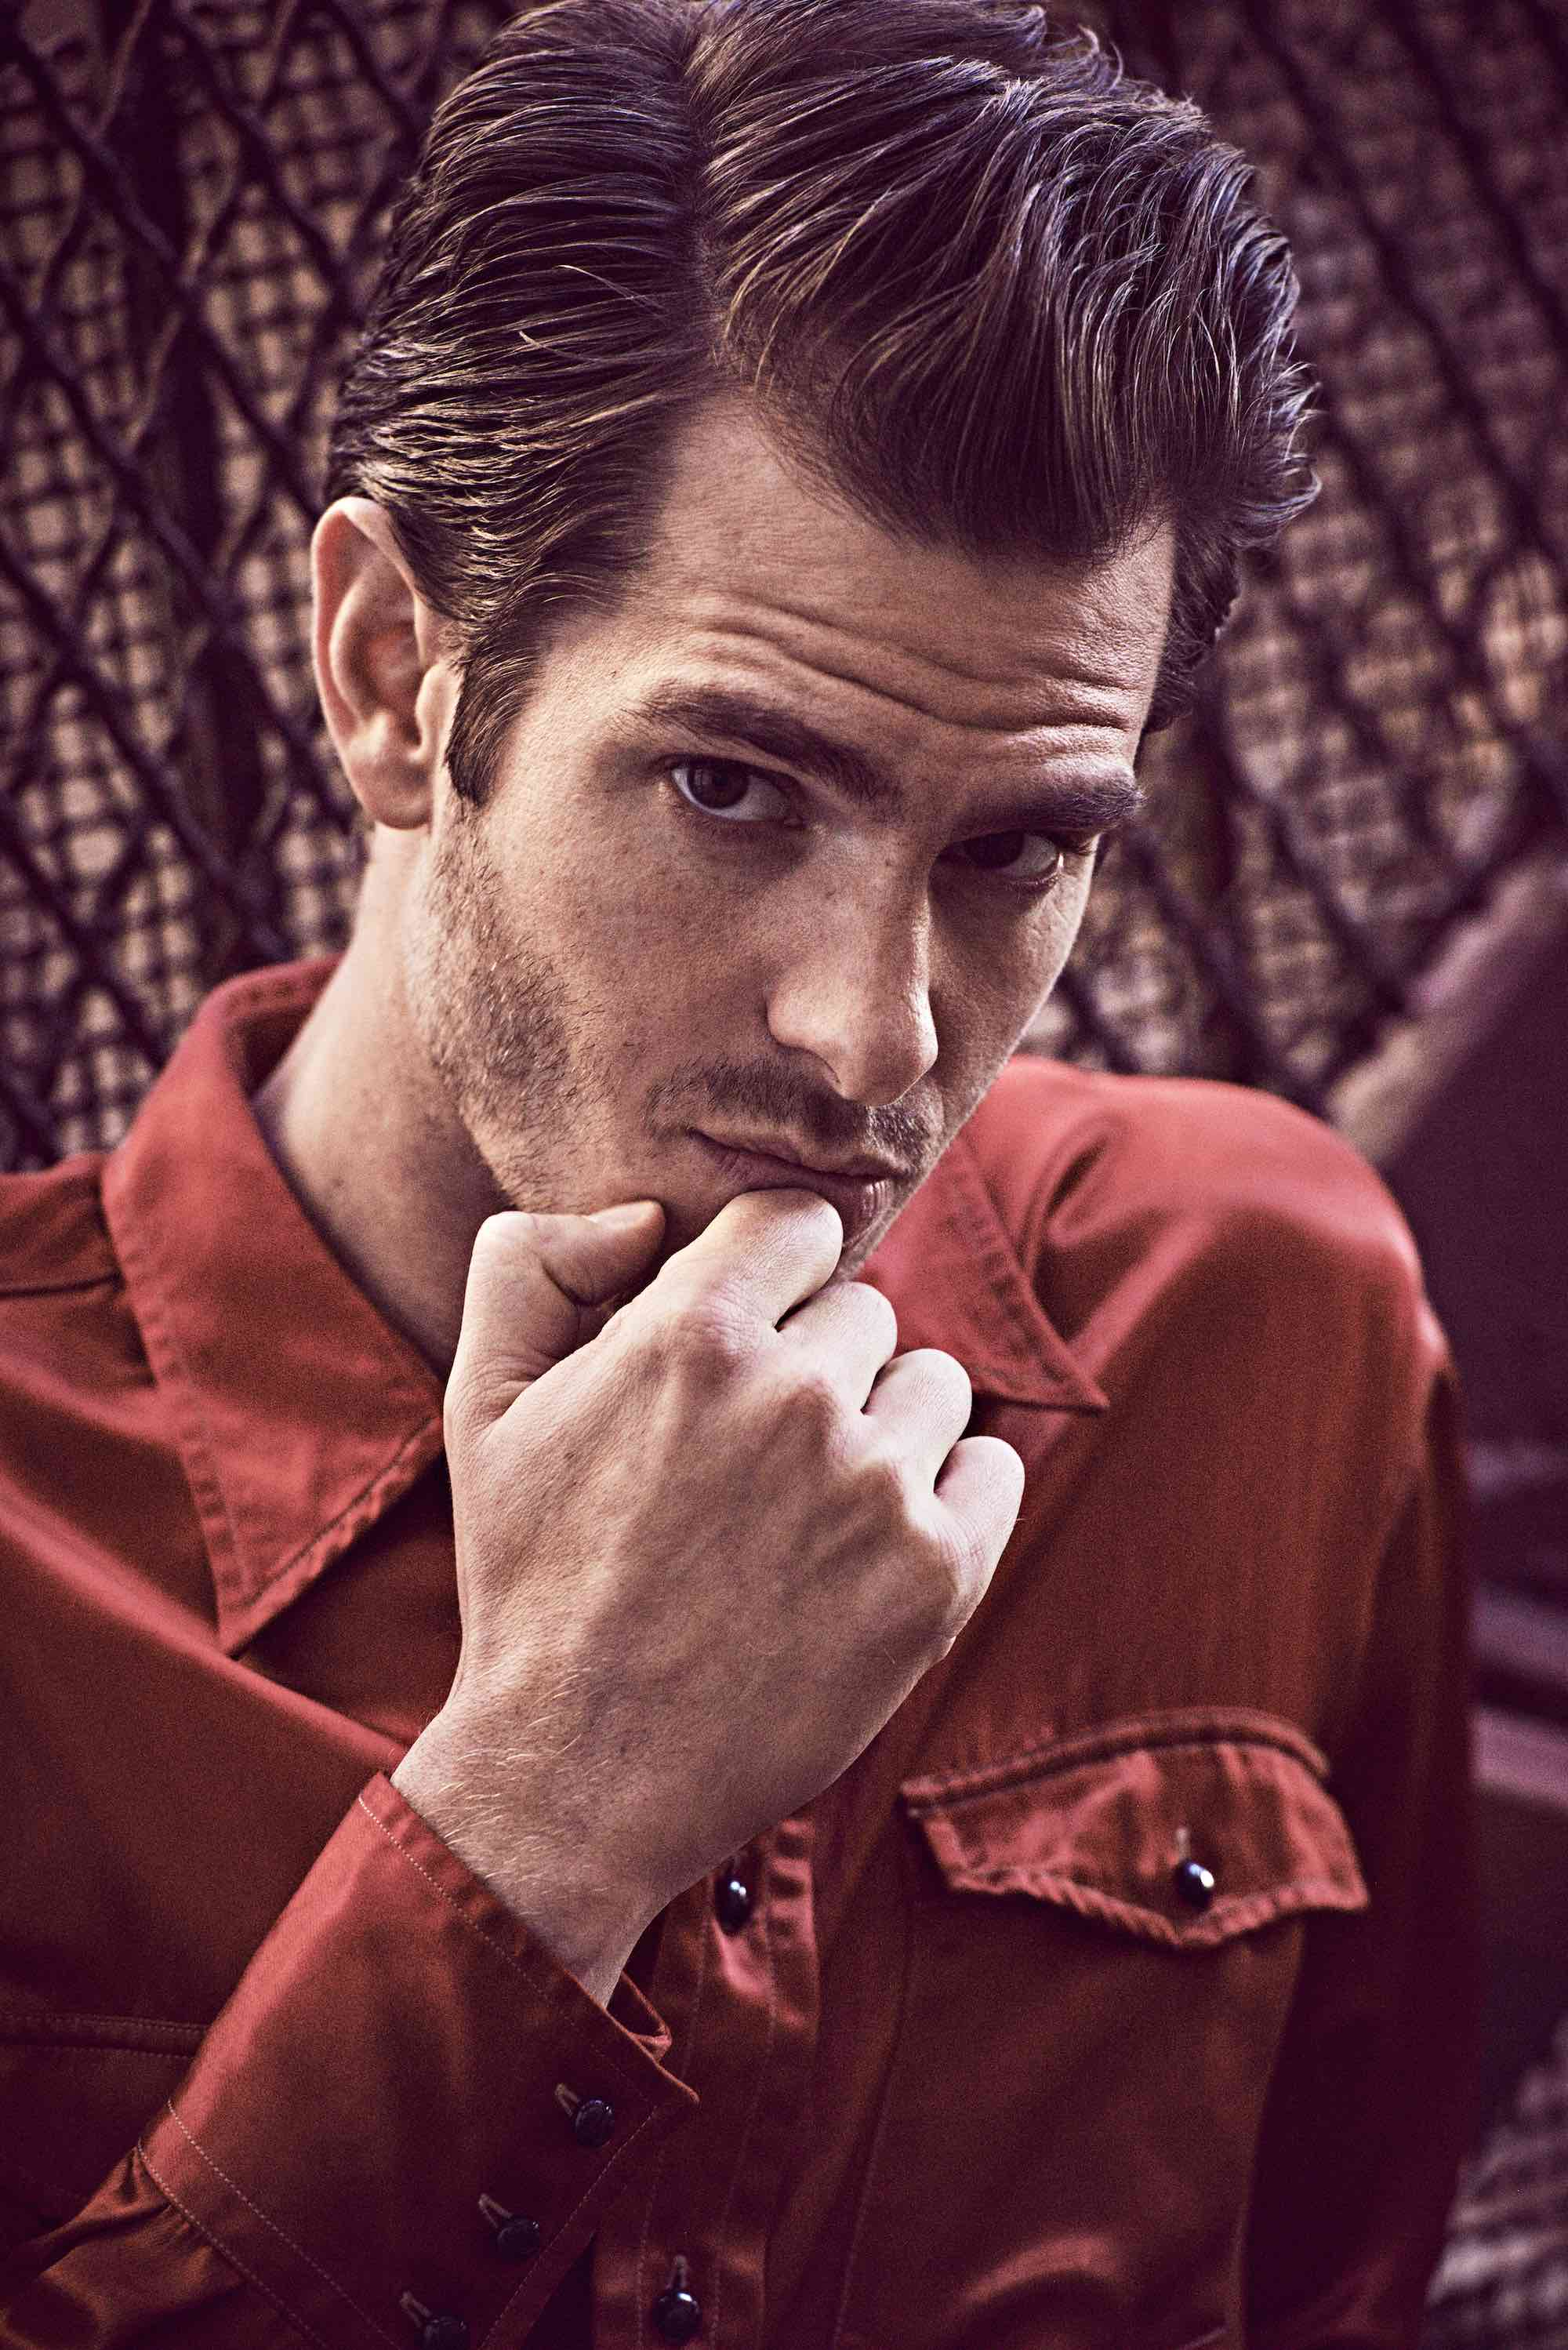 2017_11_out_mag_andrew_garfield_05_0180_c_0.jpg